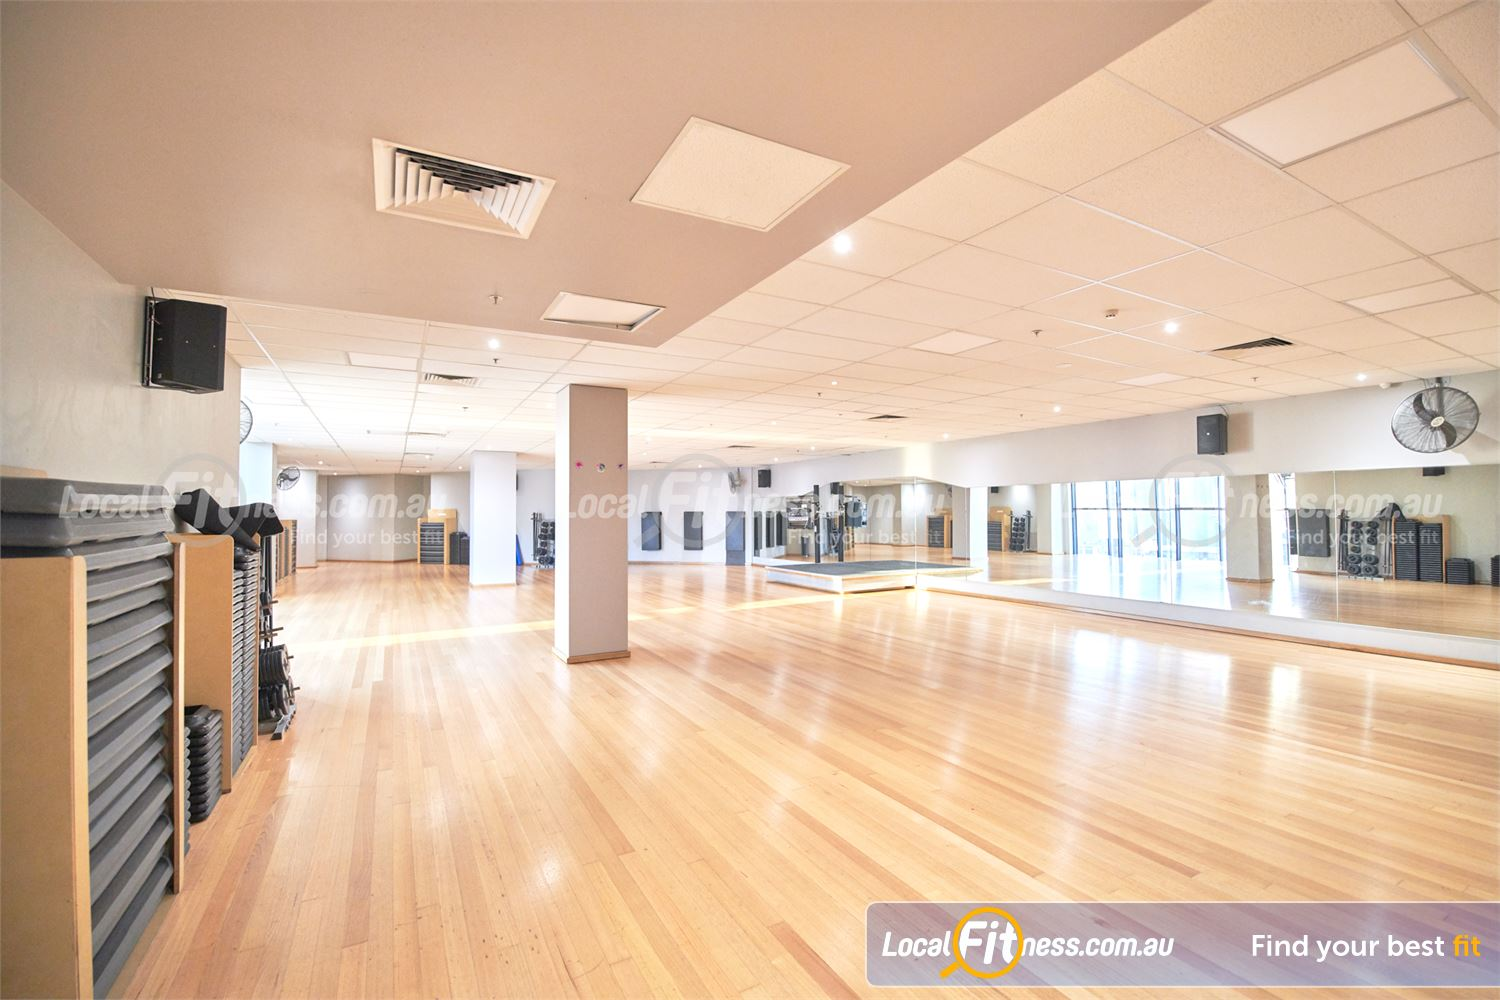 Fitness First Melbourne Central Platinum Melbourne Over 100 classes per week inc. Melbourne Zumba, Les Mills and more.